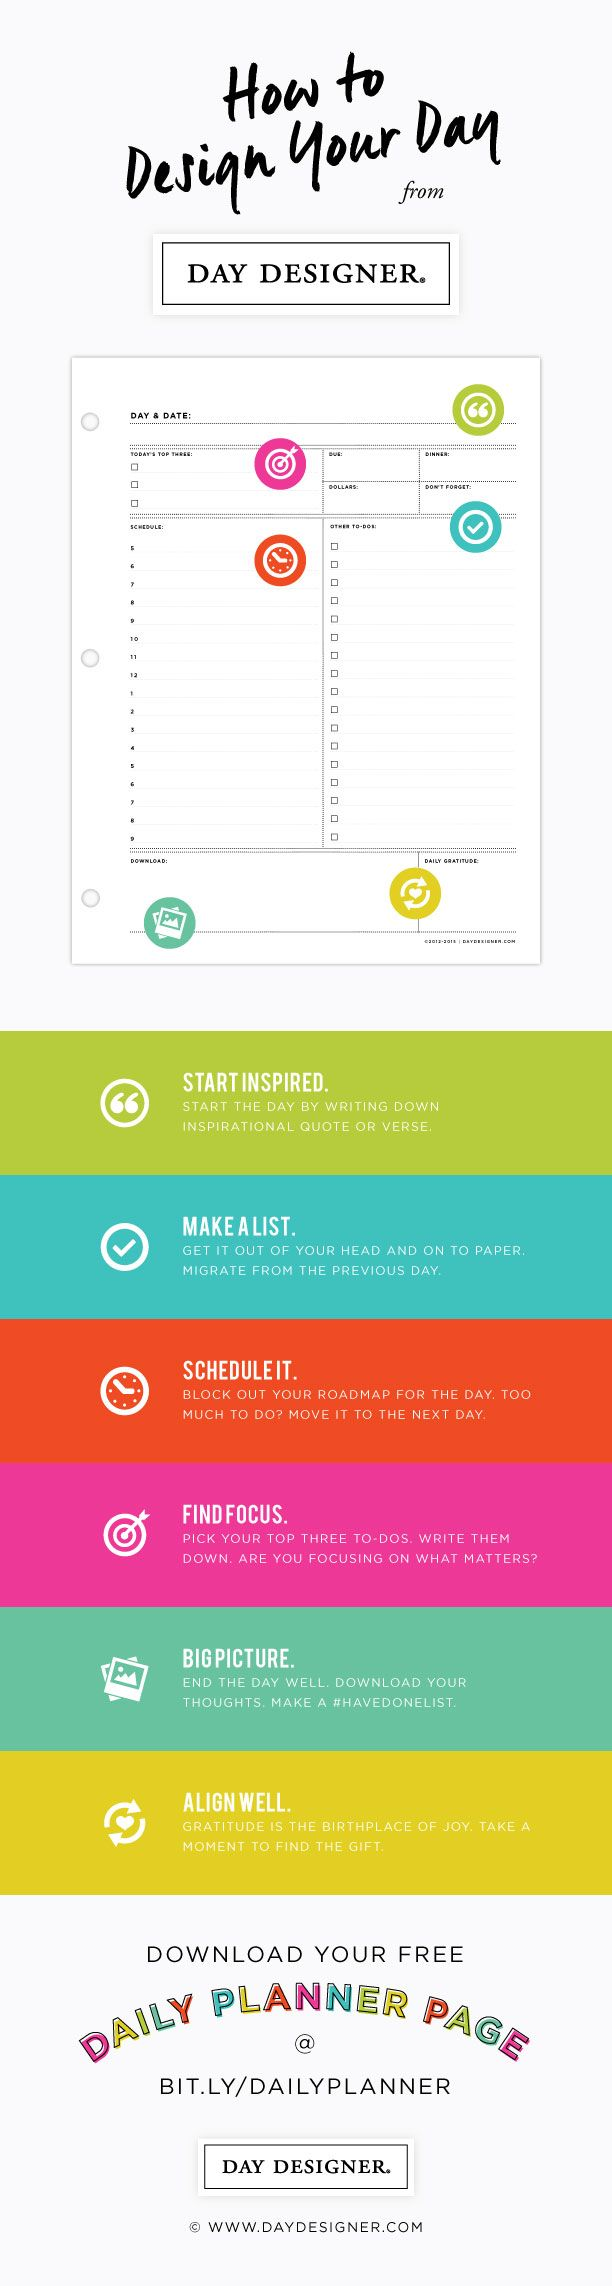 Fine 1 2 3 Nu Opgaver Kapitel Resume Tall 1300 Resume Government Samples Selection Criteria Round 17 Year Old Resumes 2 Column Website Template Old 2 Weeks Notice Templates Fresh2007 Word Templates 25  Best Ideas About Daily Schedule Template On Pinterest | Daily ..